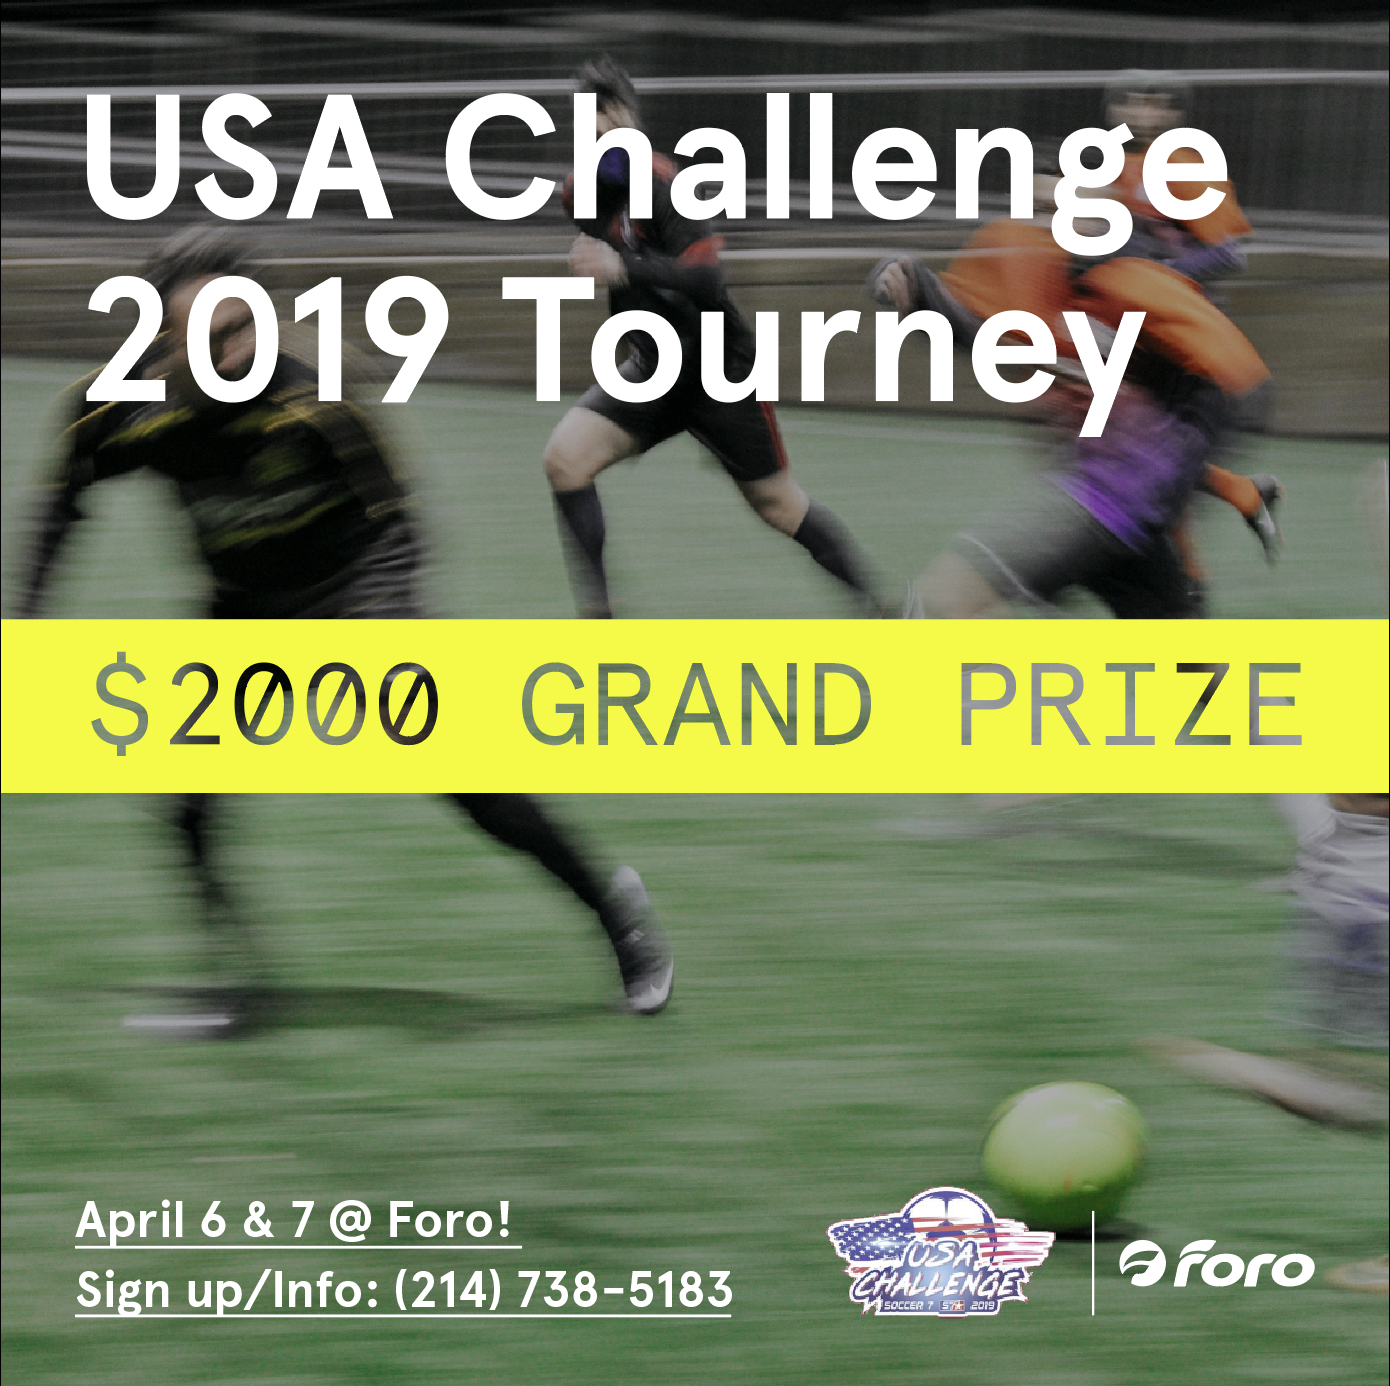 7v7 Tourney - Upcoming USA Challenge S7 Tourney! Text (214) 738 5183 or email info@forosportsclub.com for more info! Winner of the tourney takes $2000 with all-expenses paid trips to the Mexico to play the championship at Estadio Azteca!We have house teams looking for players if you are flying solo!